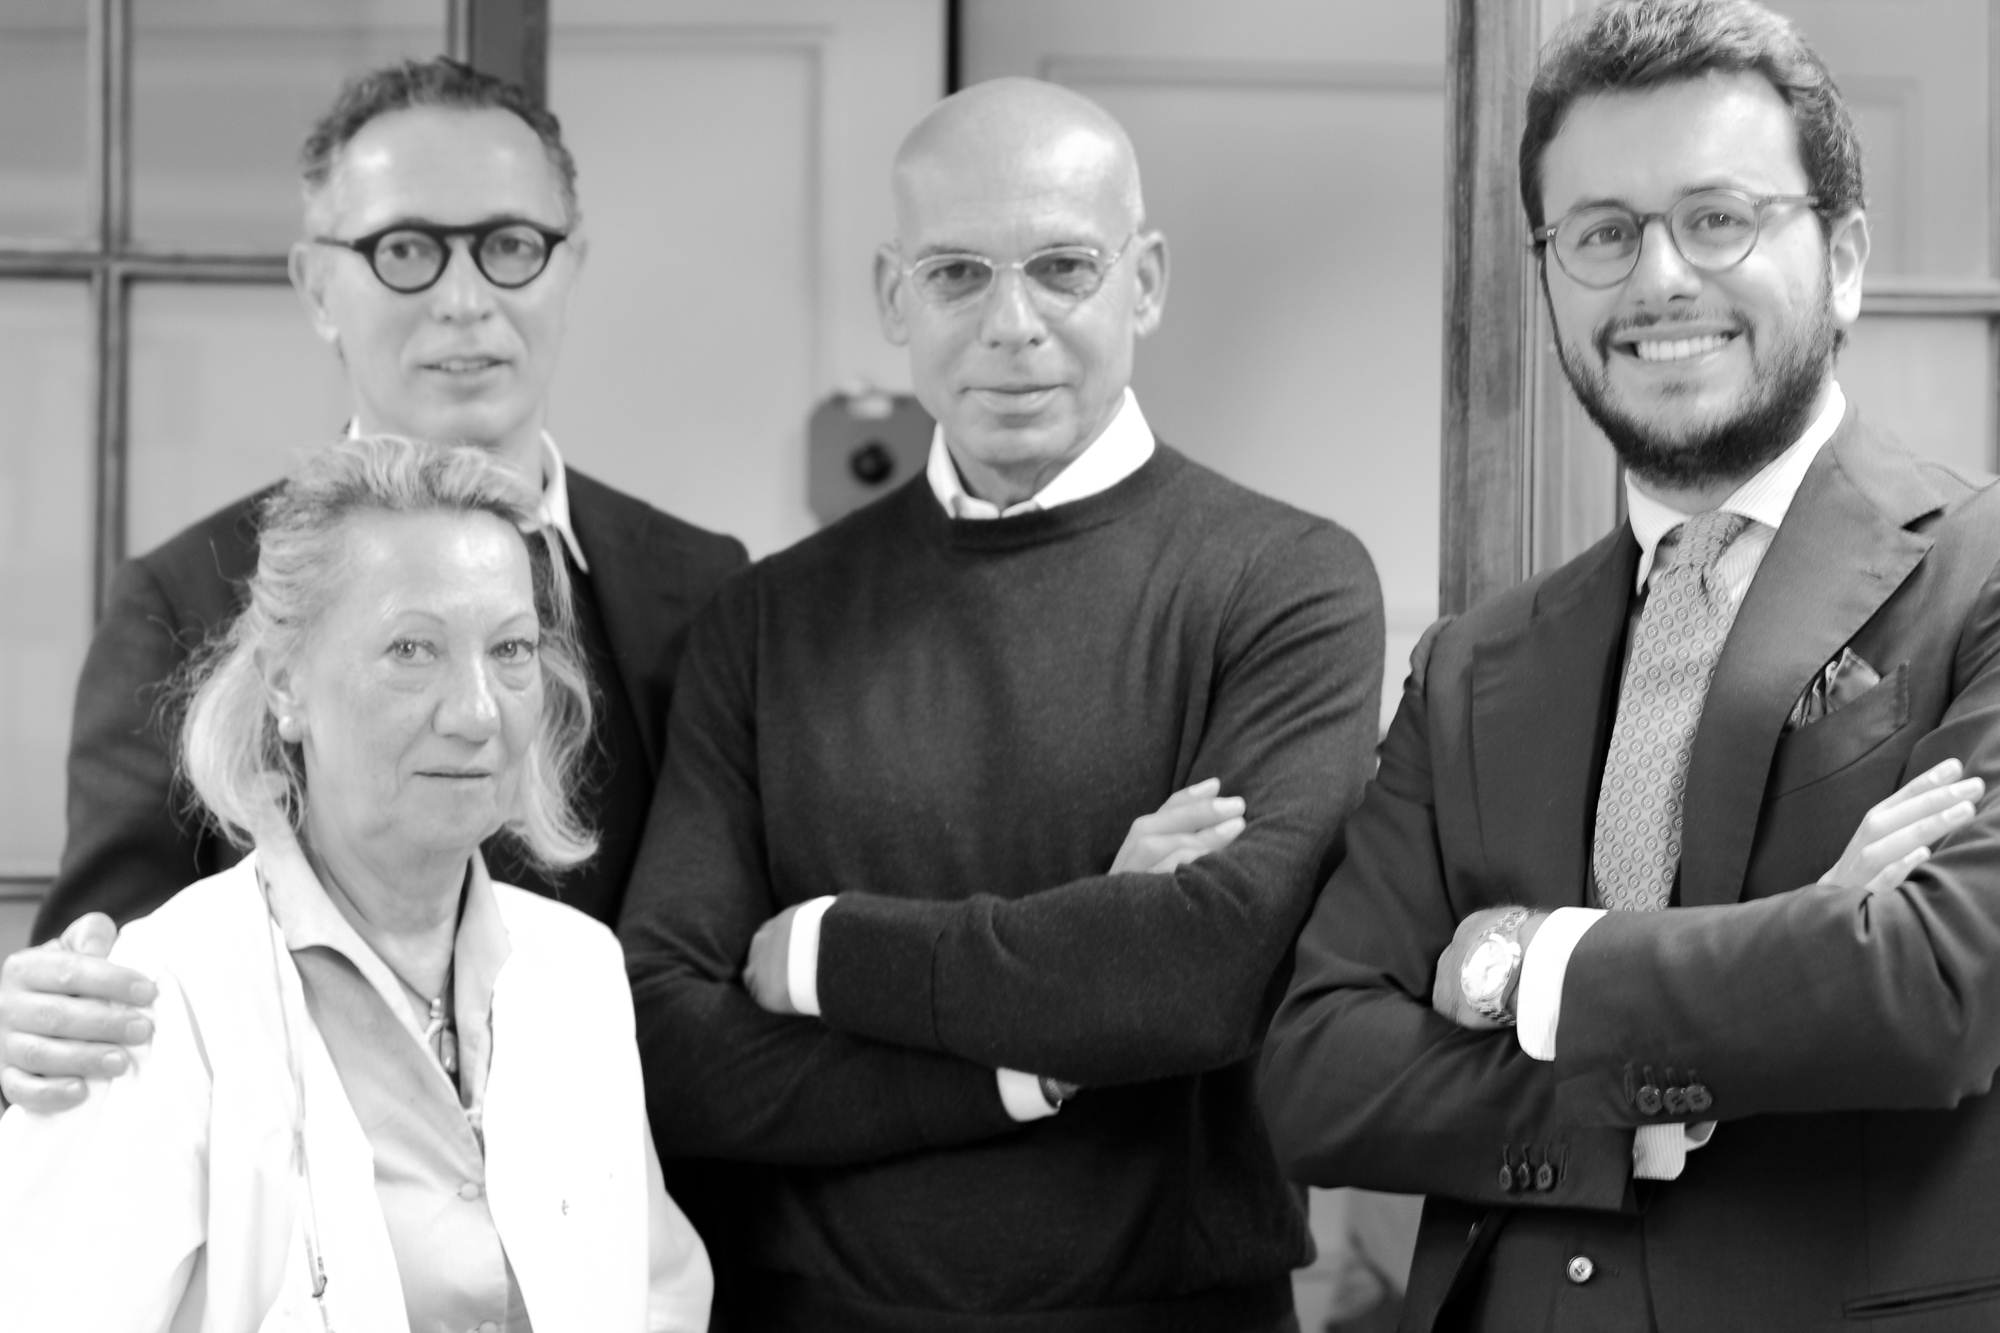 The Roman Chapter: FG Albertelli  A chat with the owners Domenico D'Angelo and Luca Luchetti